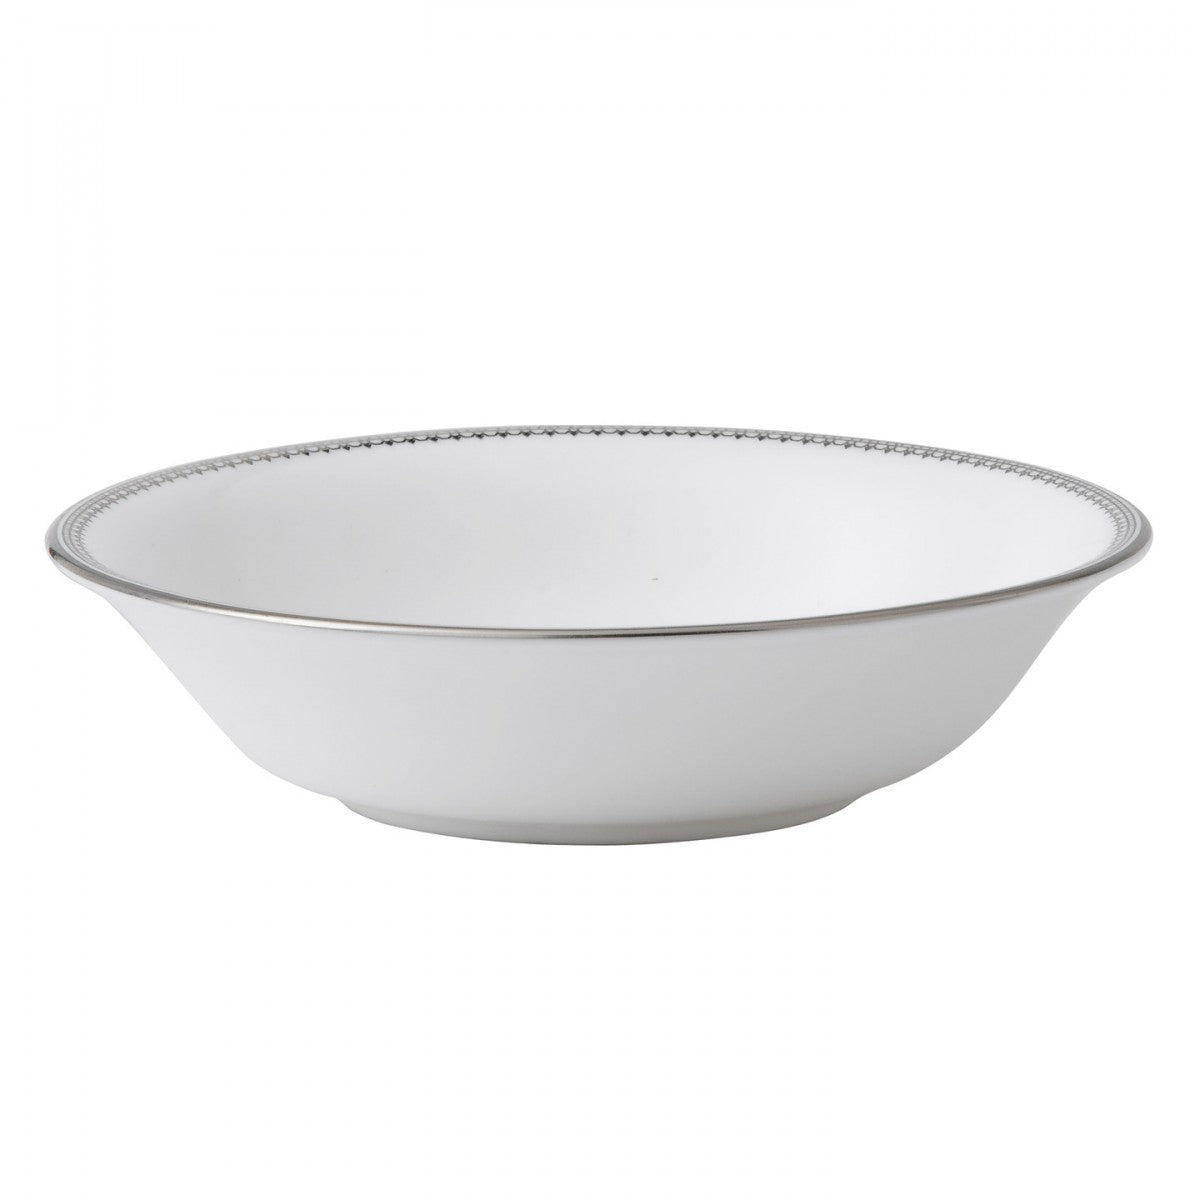 Vera Wang Lace Platinum Cereal Bowl 16cm